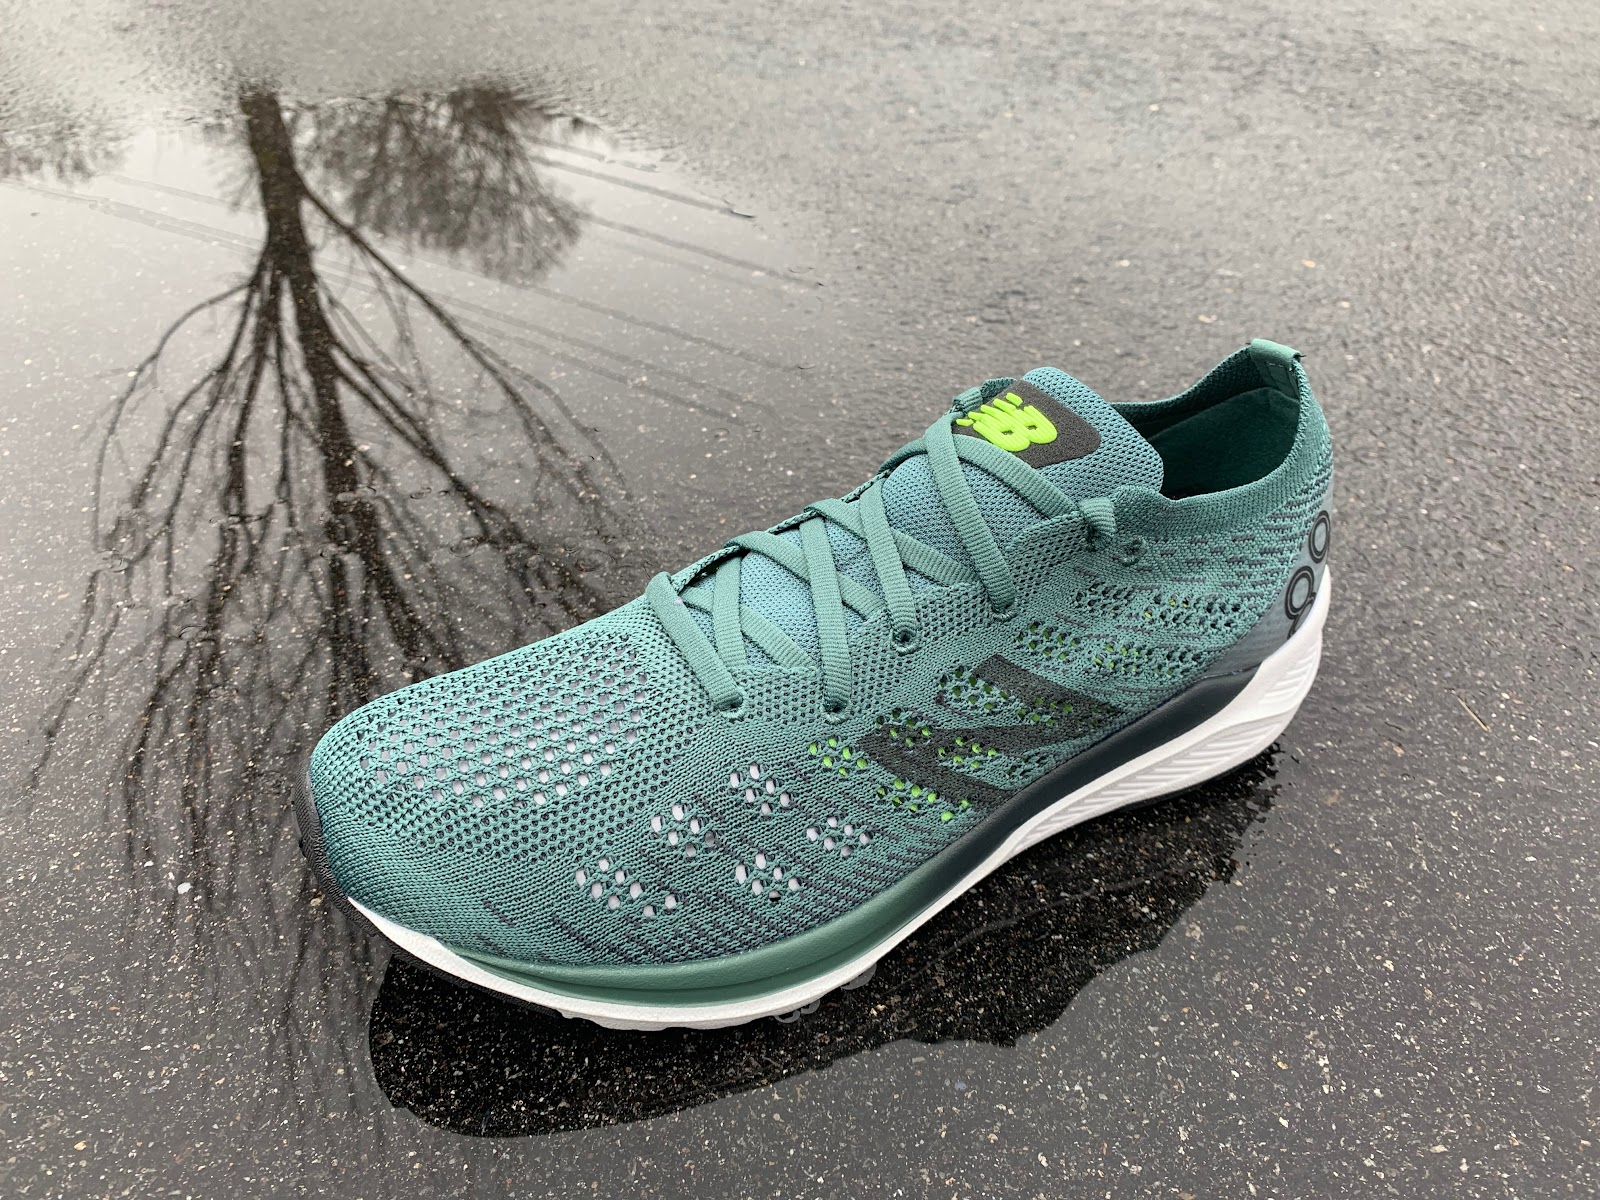 e97c407c282 Road Trail Run  New Balance 890v7 Review  Looks Great. Best Run Fast!